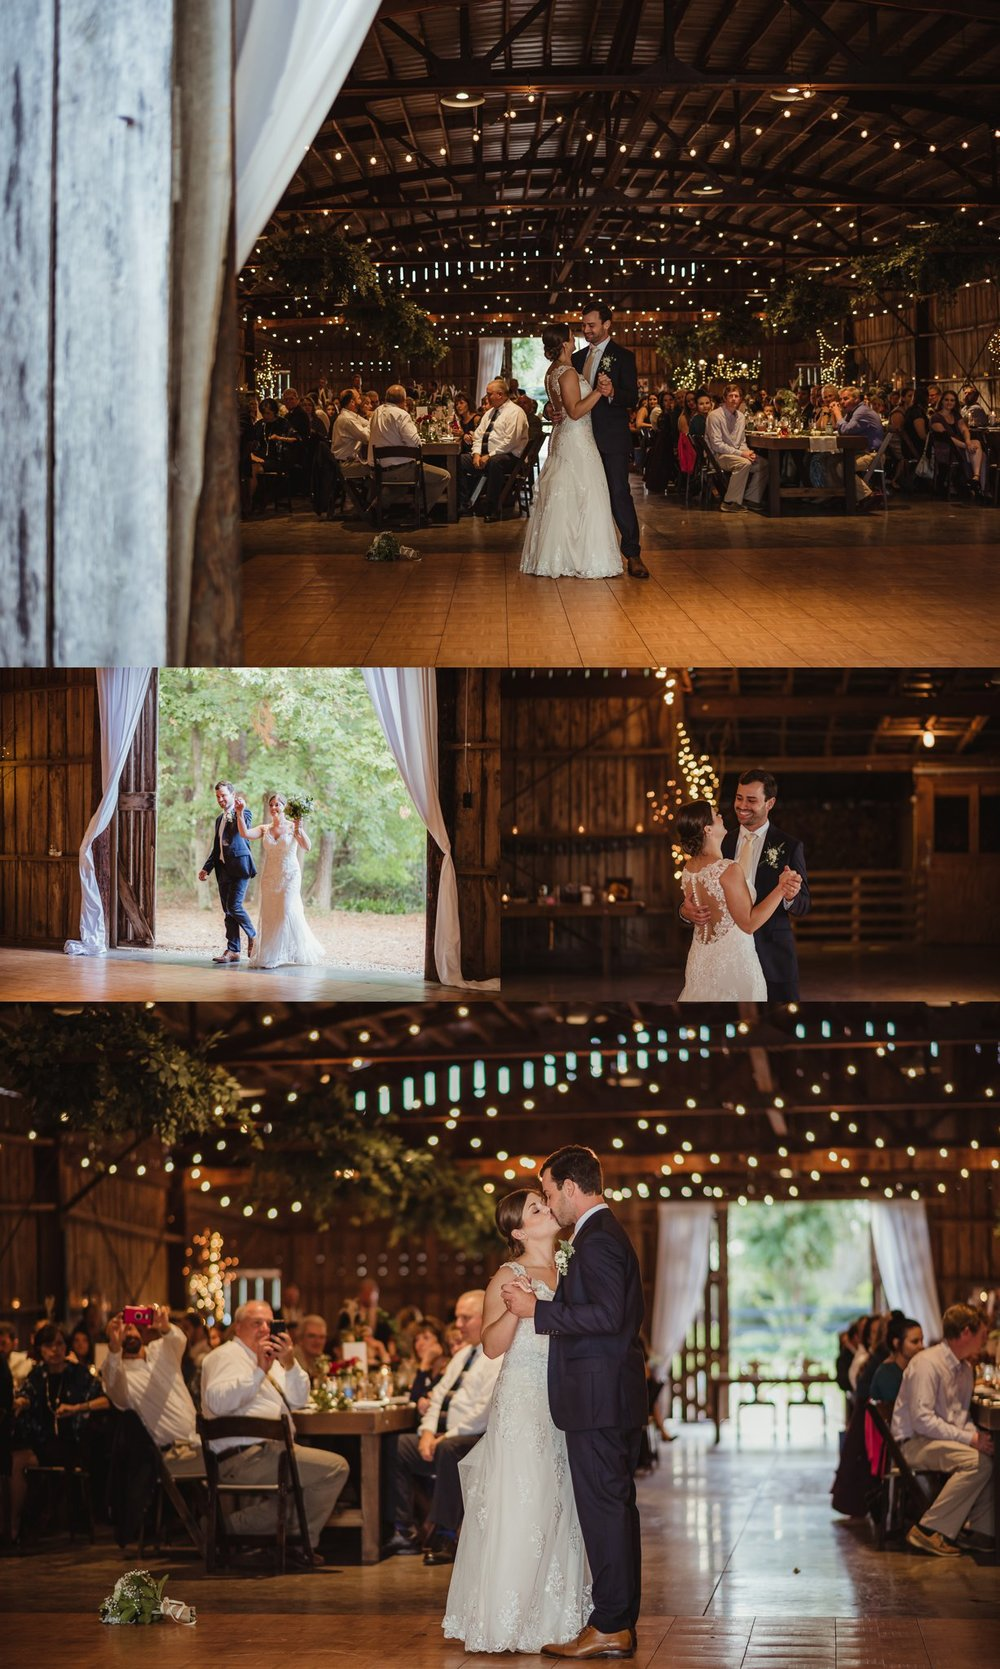 The bride and groom dance their first dance together at their wedding reception at the Little Herb House in Raleigh, North Carolina. Photos by Rose Trail Images.